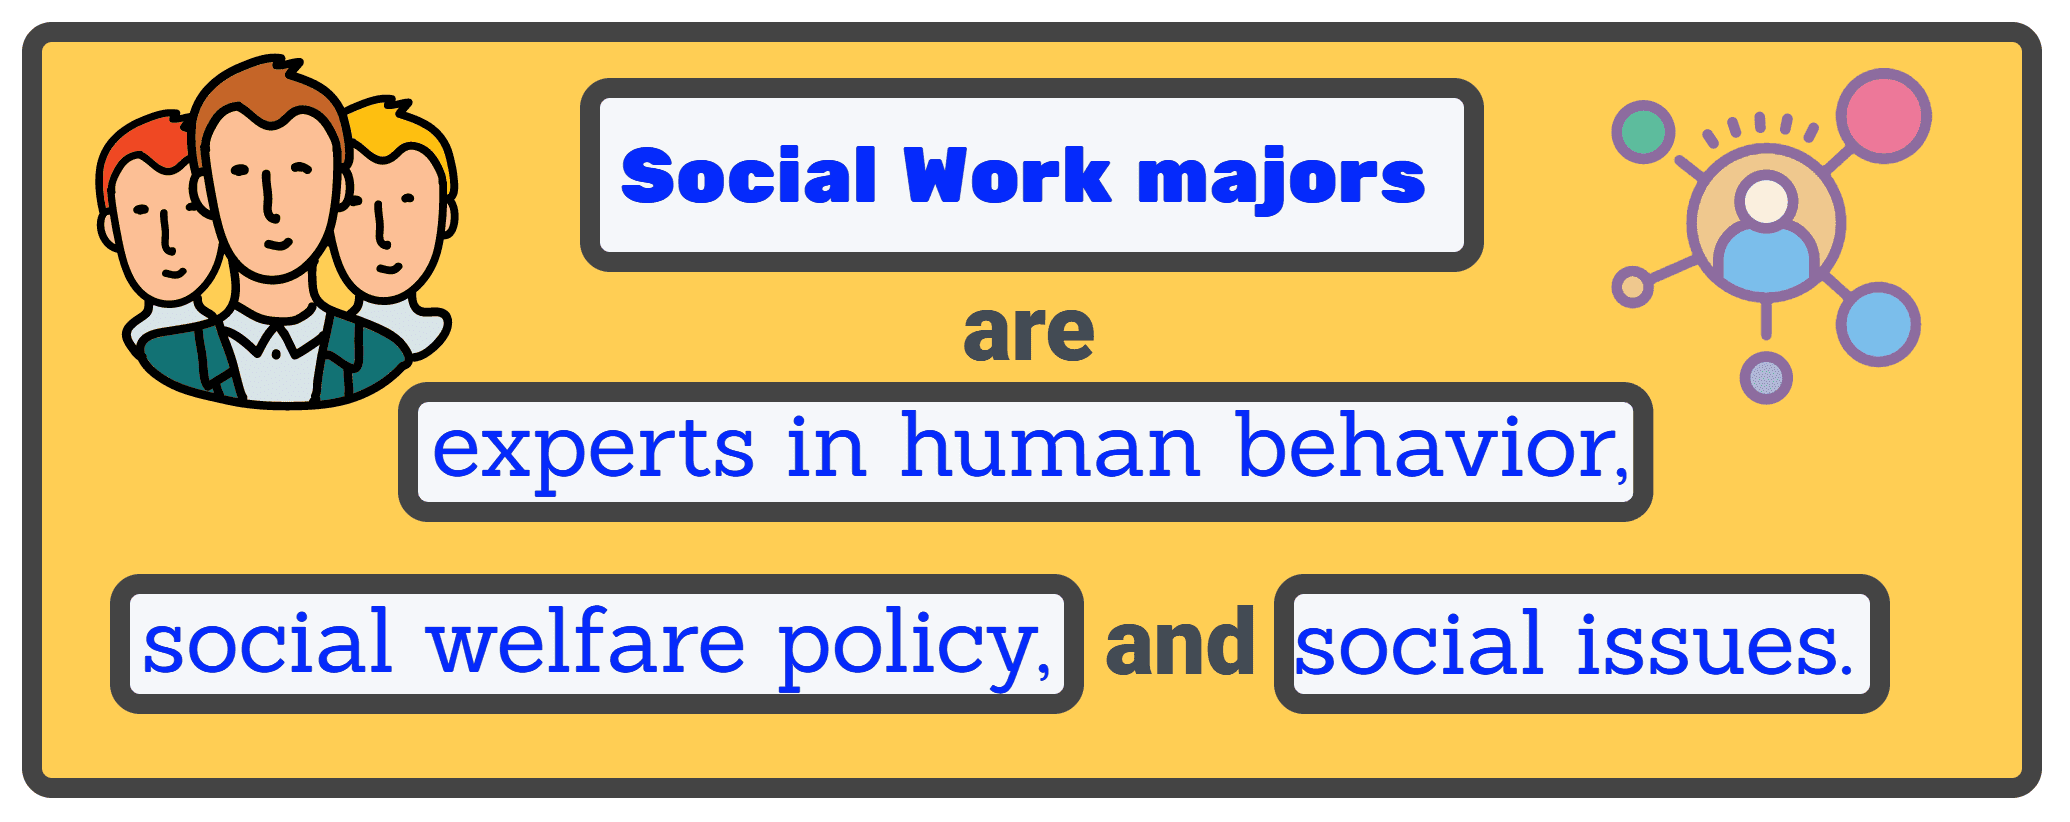 Social Work expertise